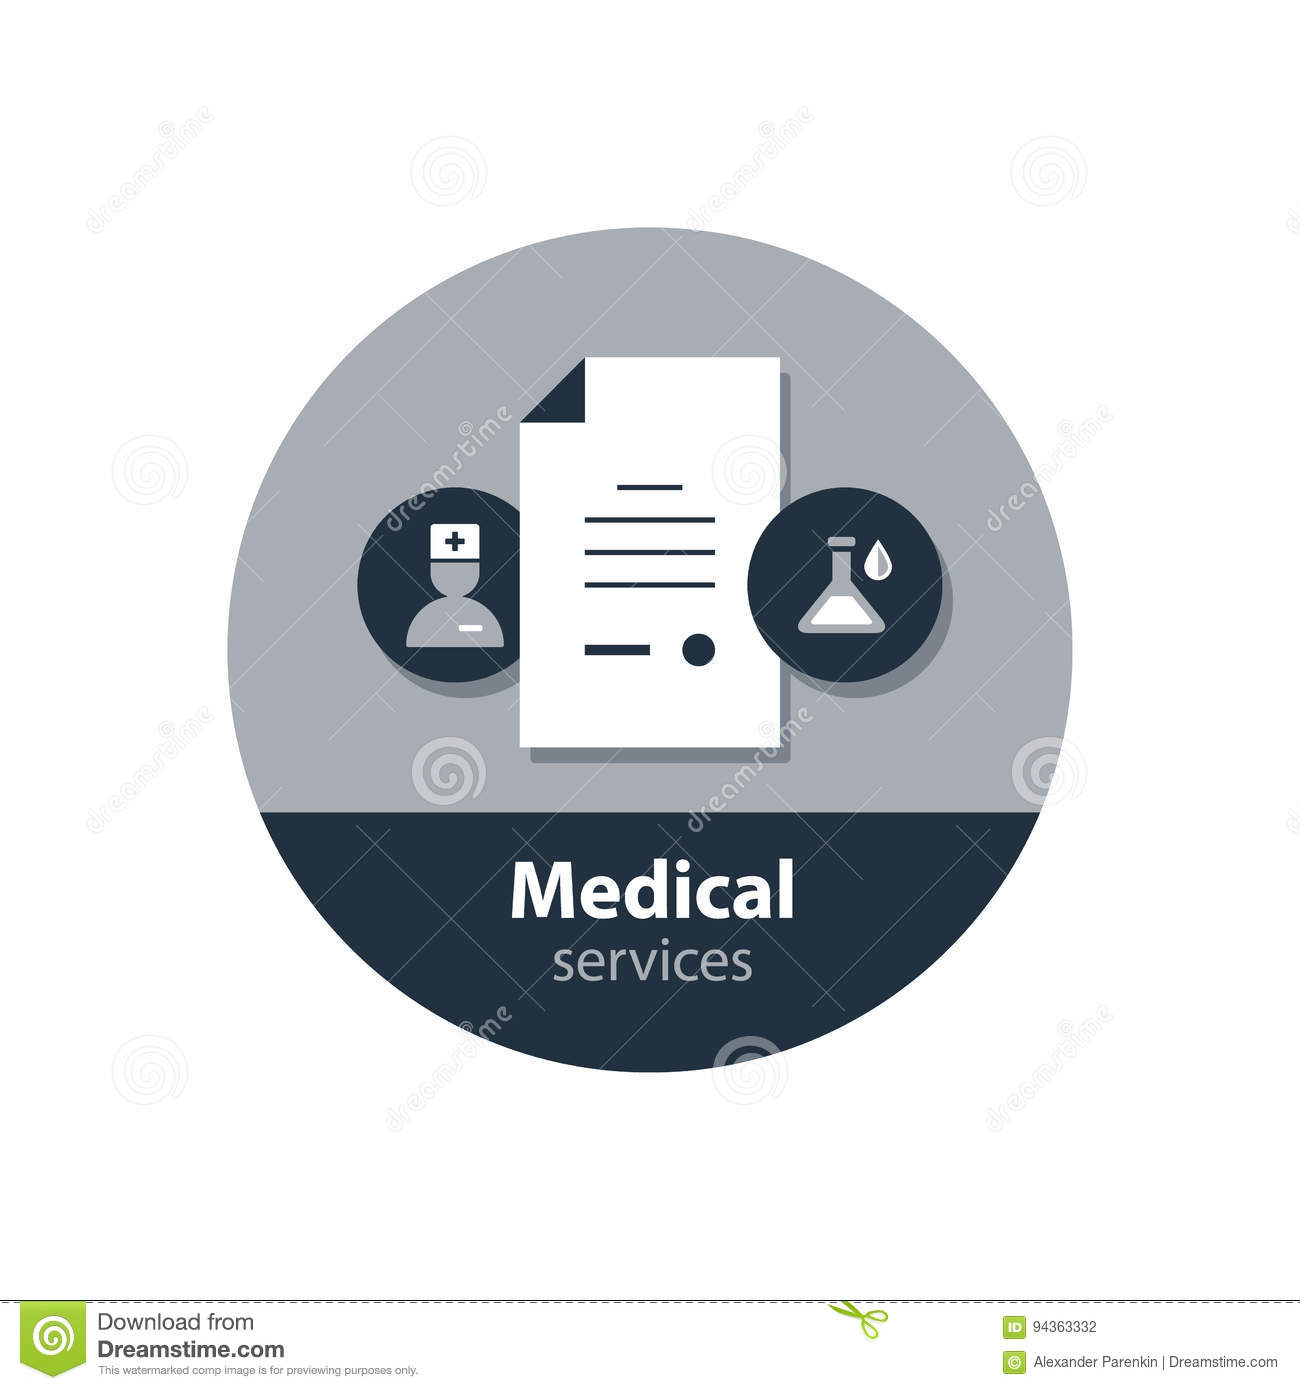 concept analysis of health Major concepts of the theory person : • abdellah describes people as having physical, emotional, and • health, or achieving of it, is the purpose of nursing services health: • in patient -centered approaches to nursing.